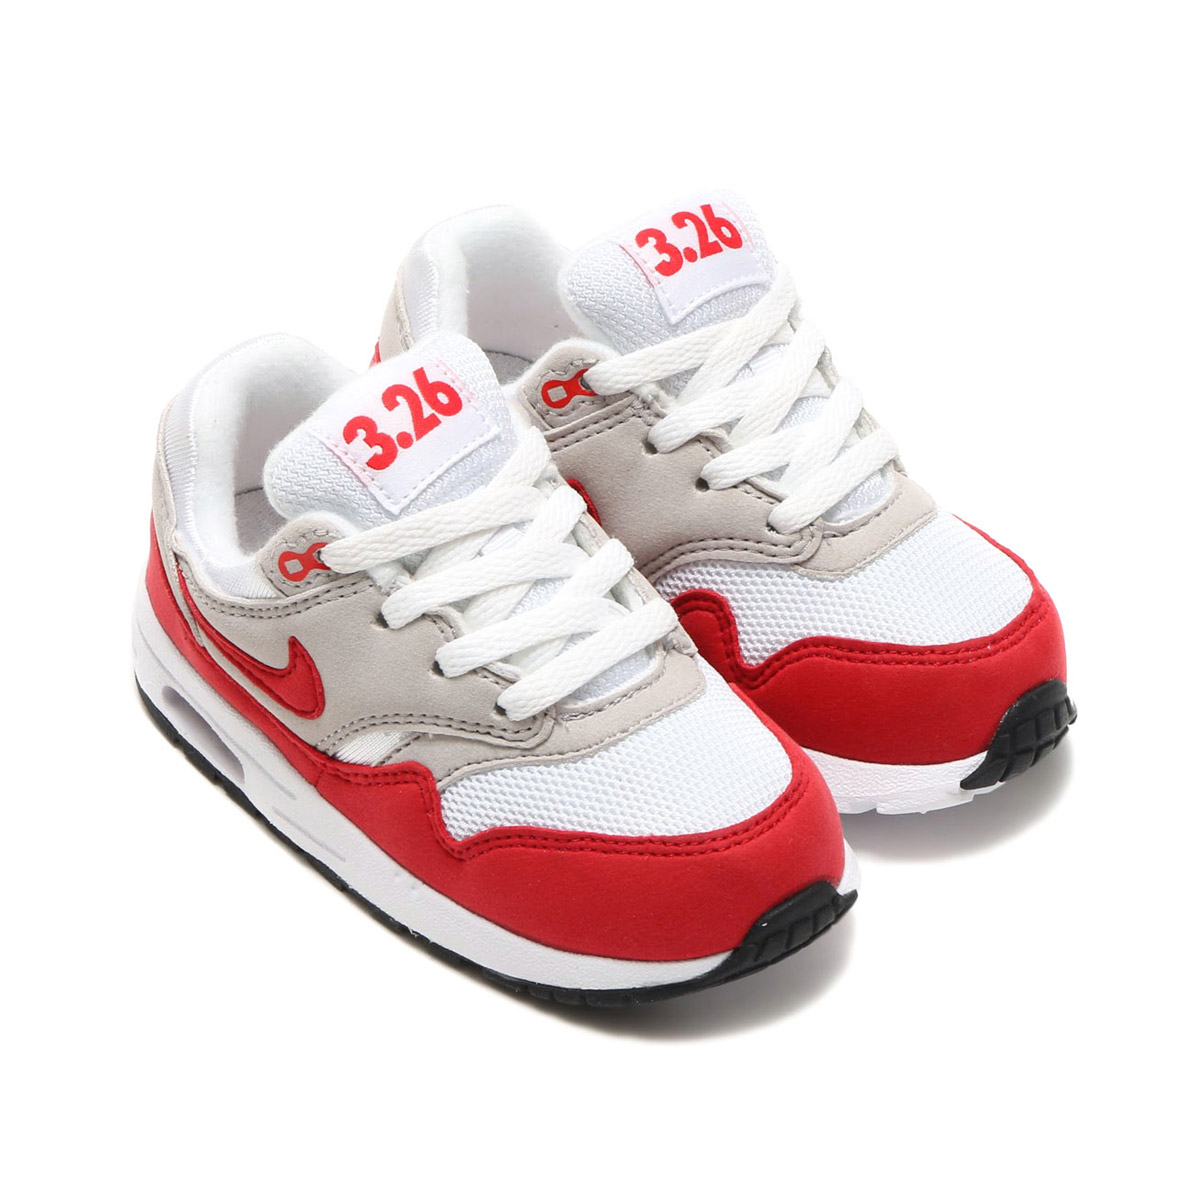 be268be1f8 Nike Air Max 1 Qs leoncamier.co.uk